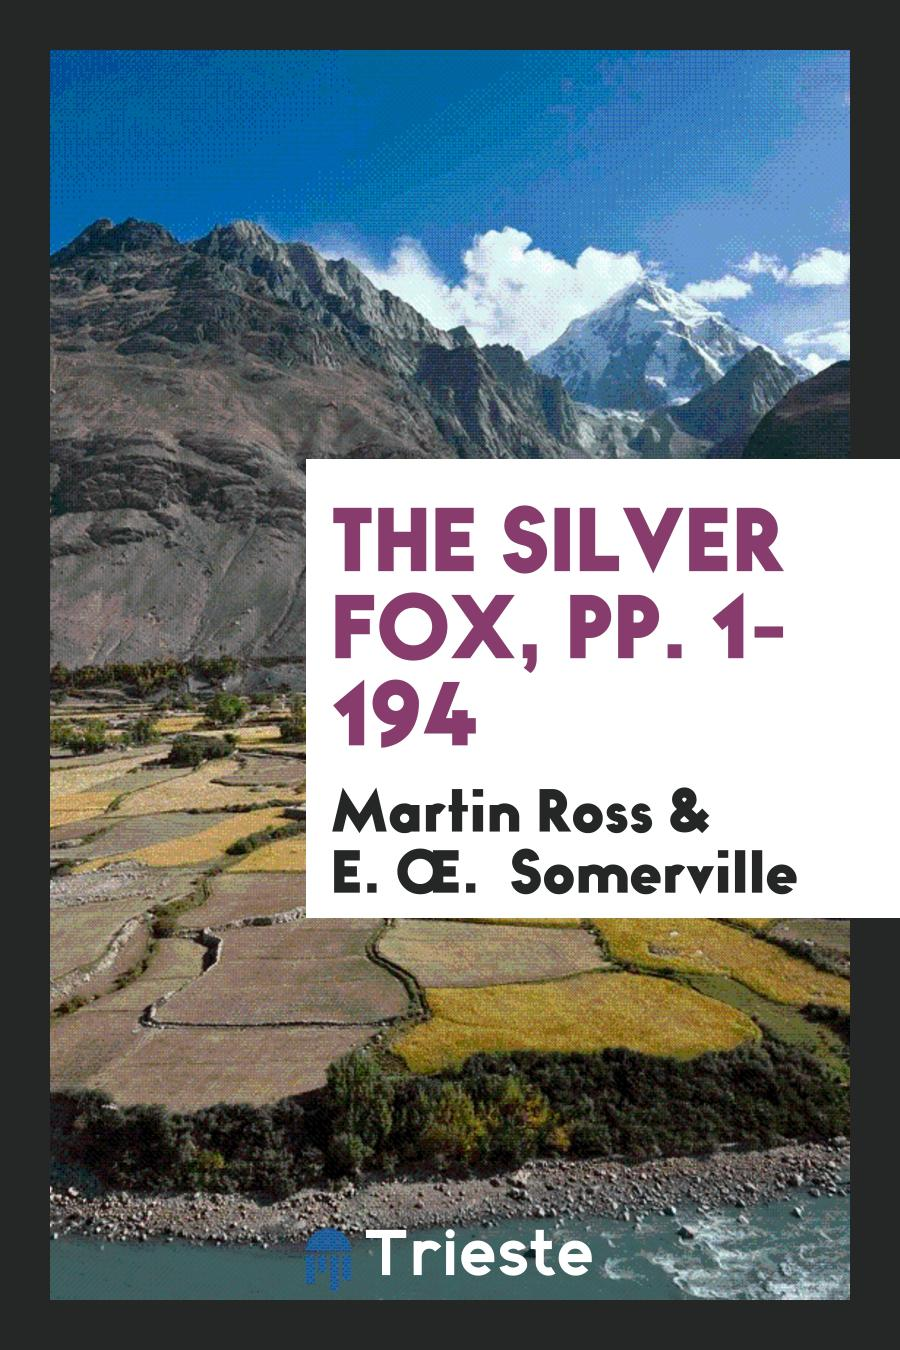 The Silver Fox, pp. 1-194